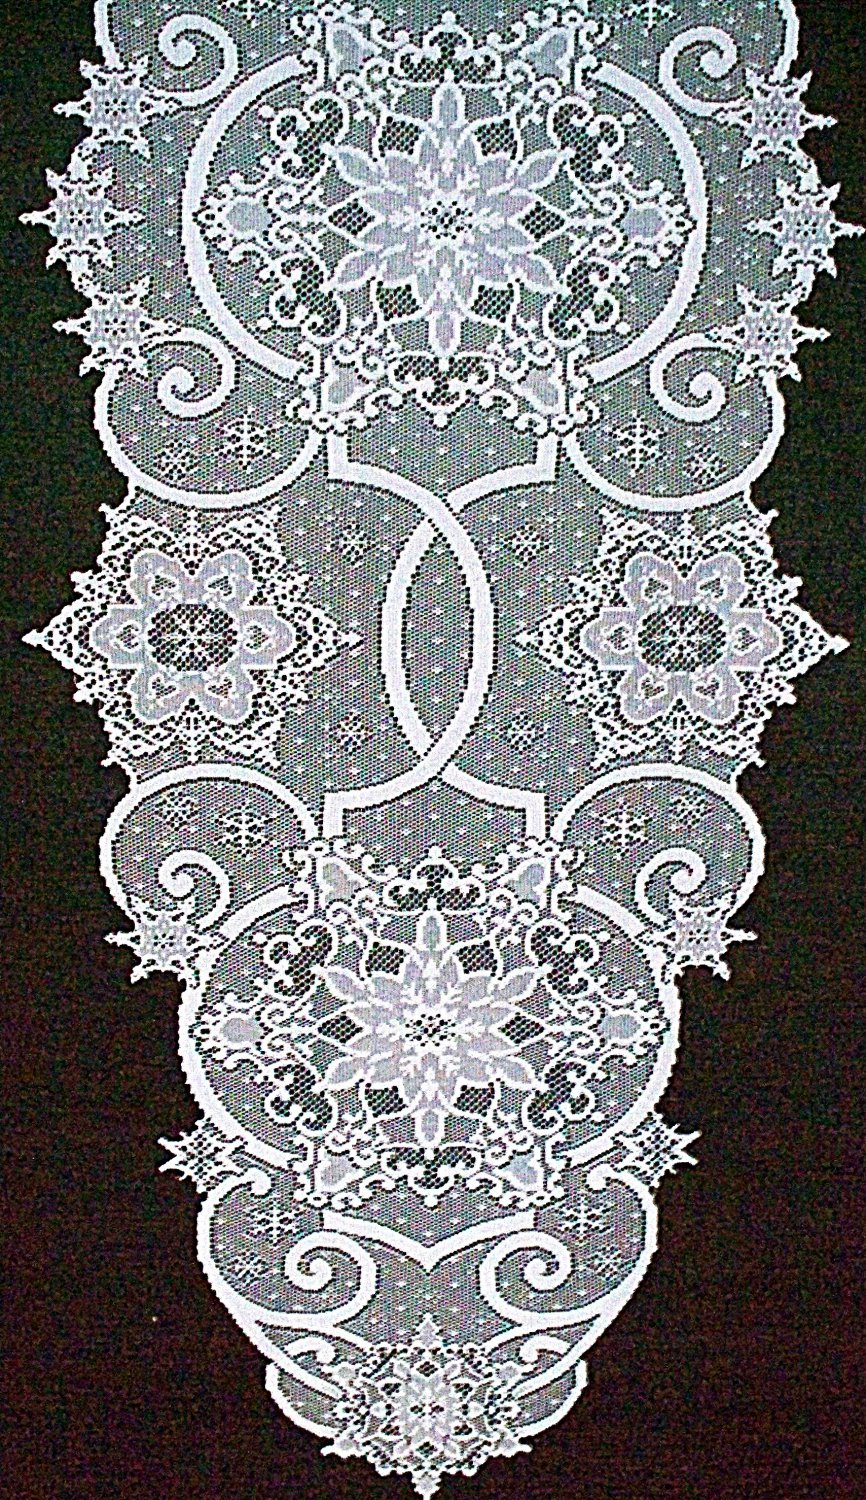 Snowflake Table Runner 19x65 White Lace Table Runner Heritage Lace